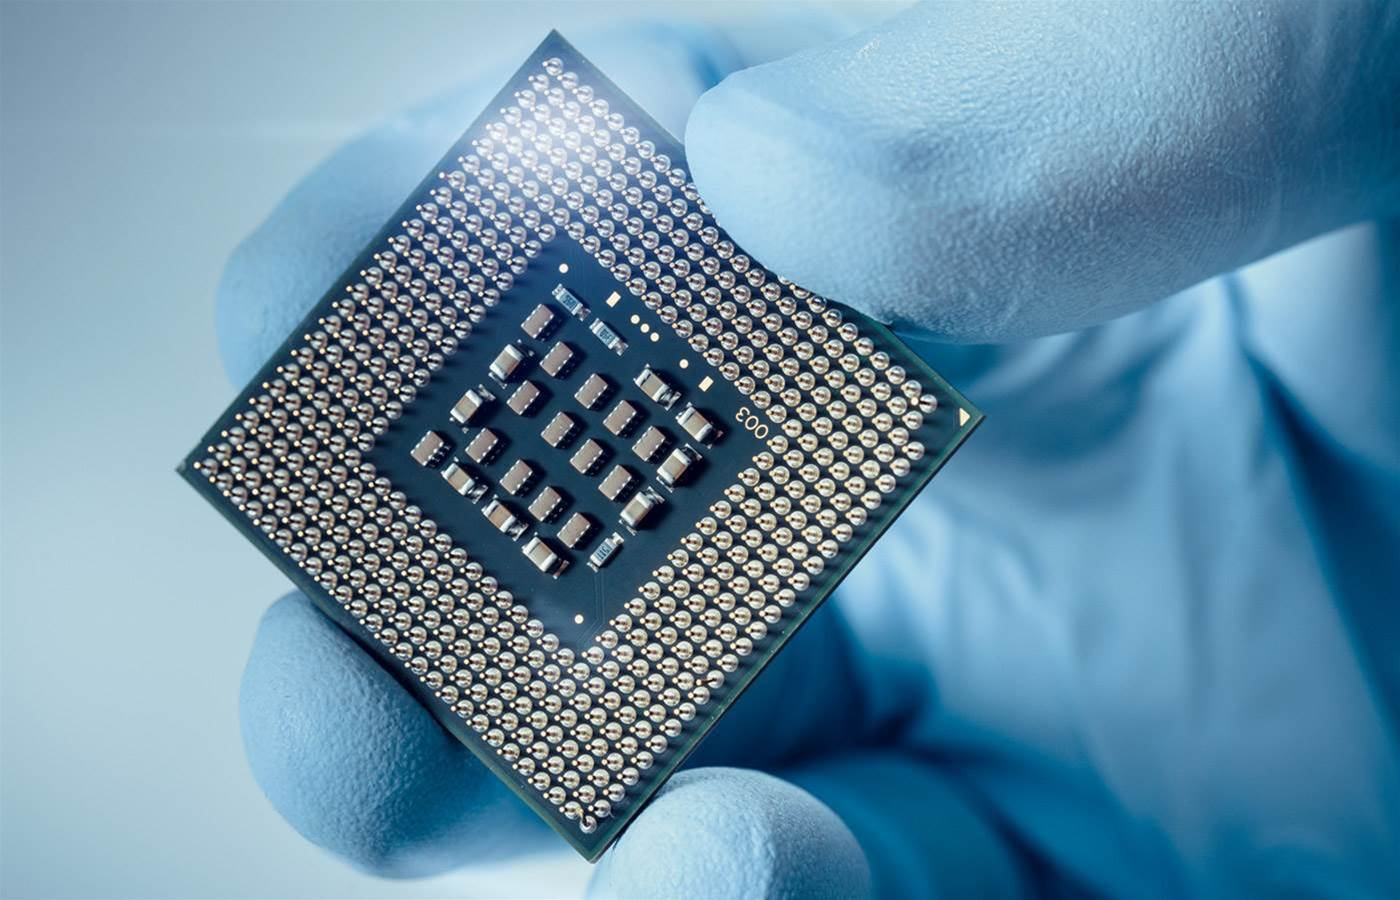 Intel launches new brand for eighth-generation CPUs